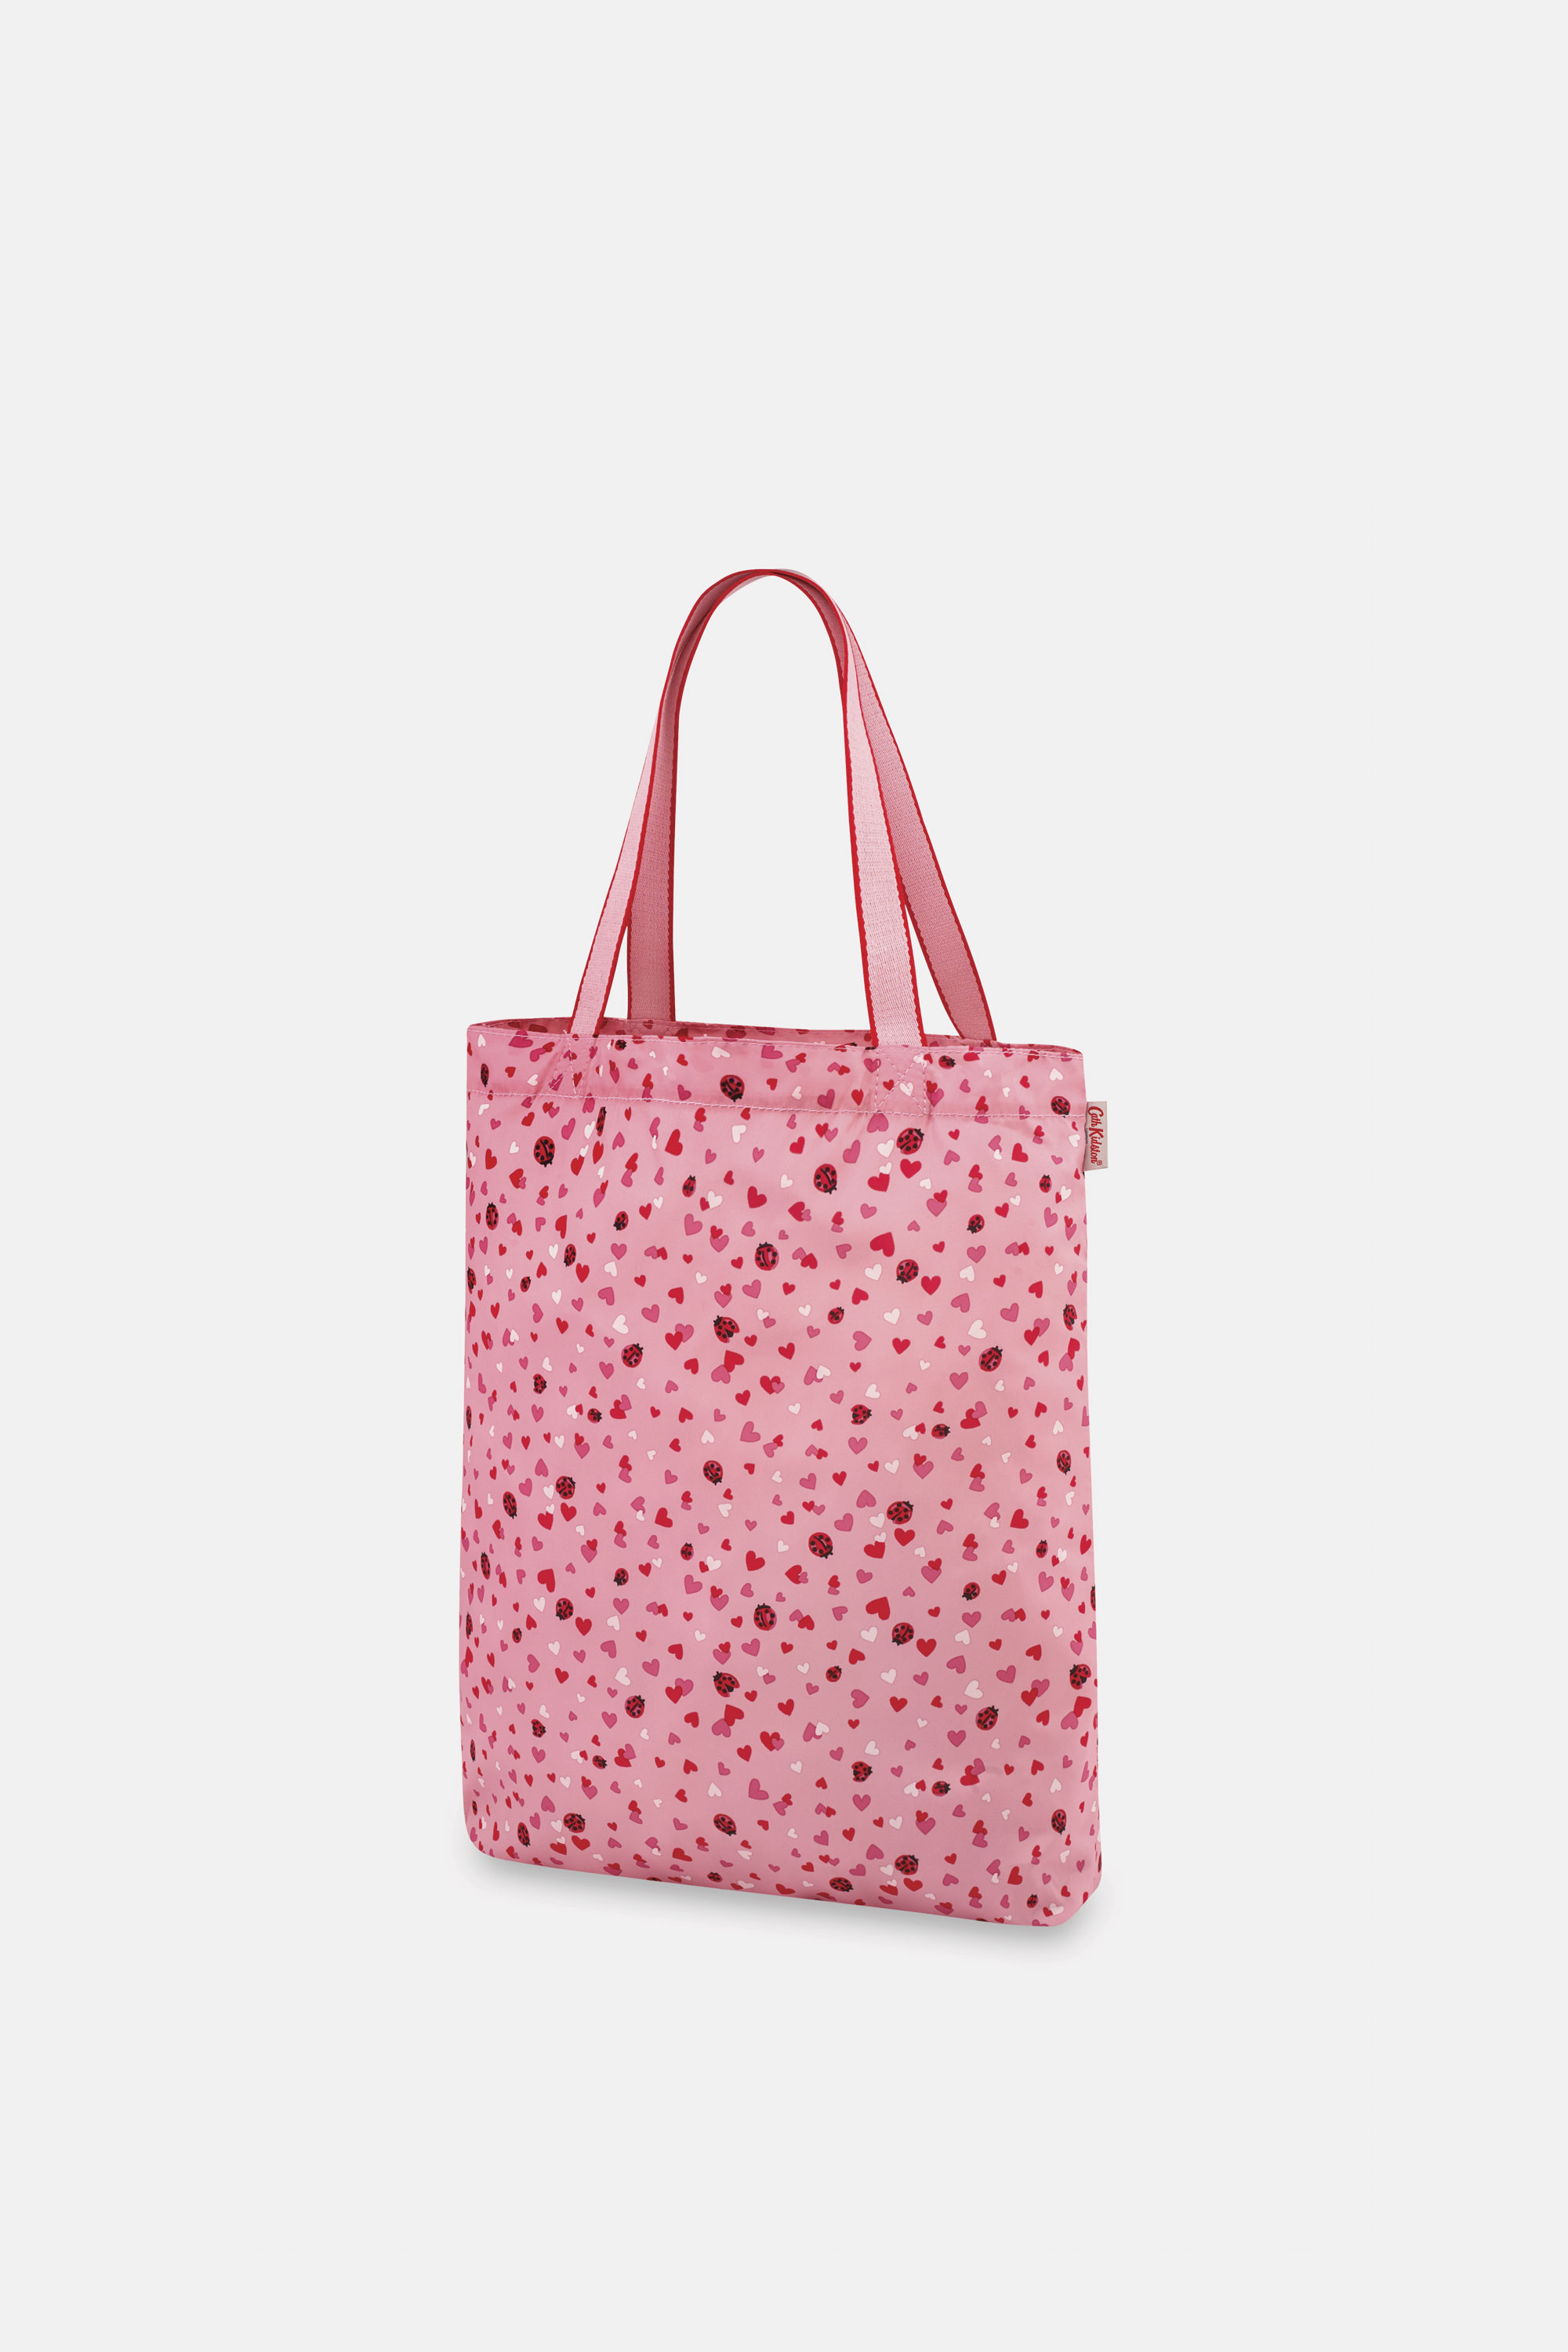 Cath Kidston Lovebugs Small Foldaway Tote in Pale Rose